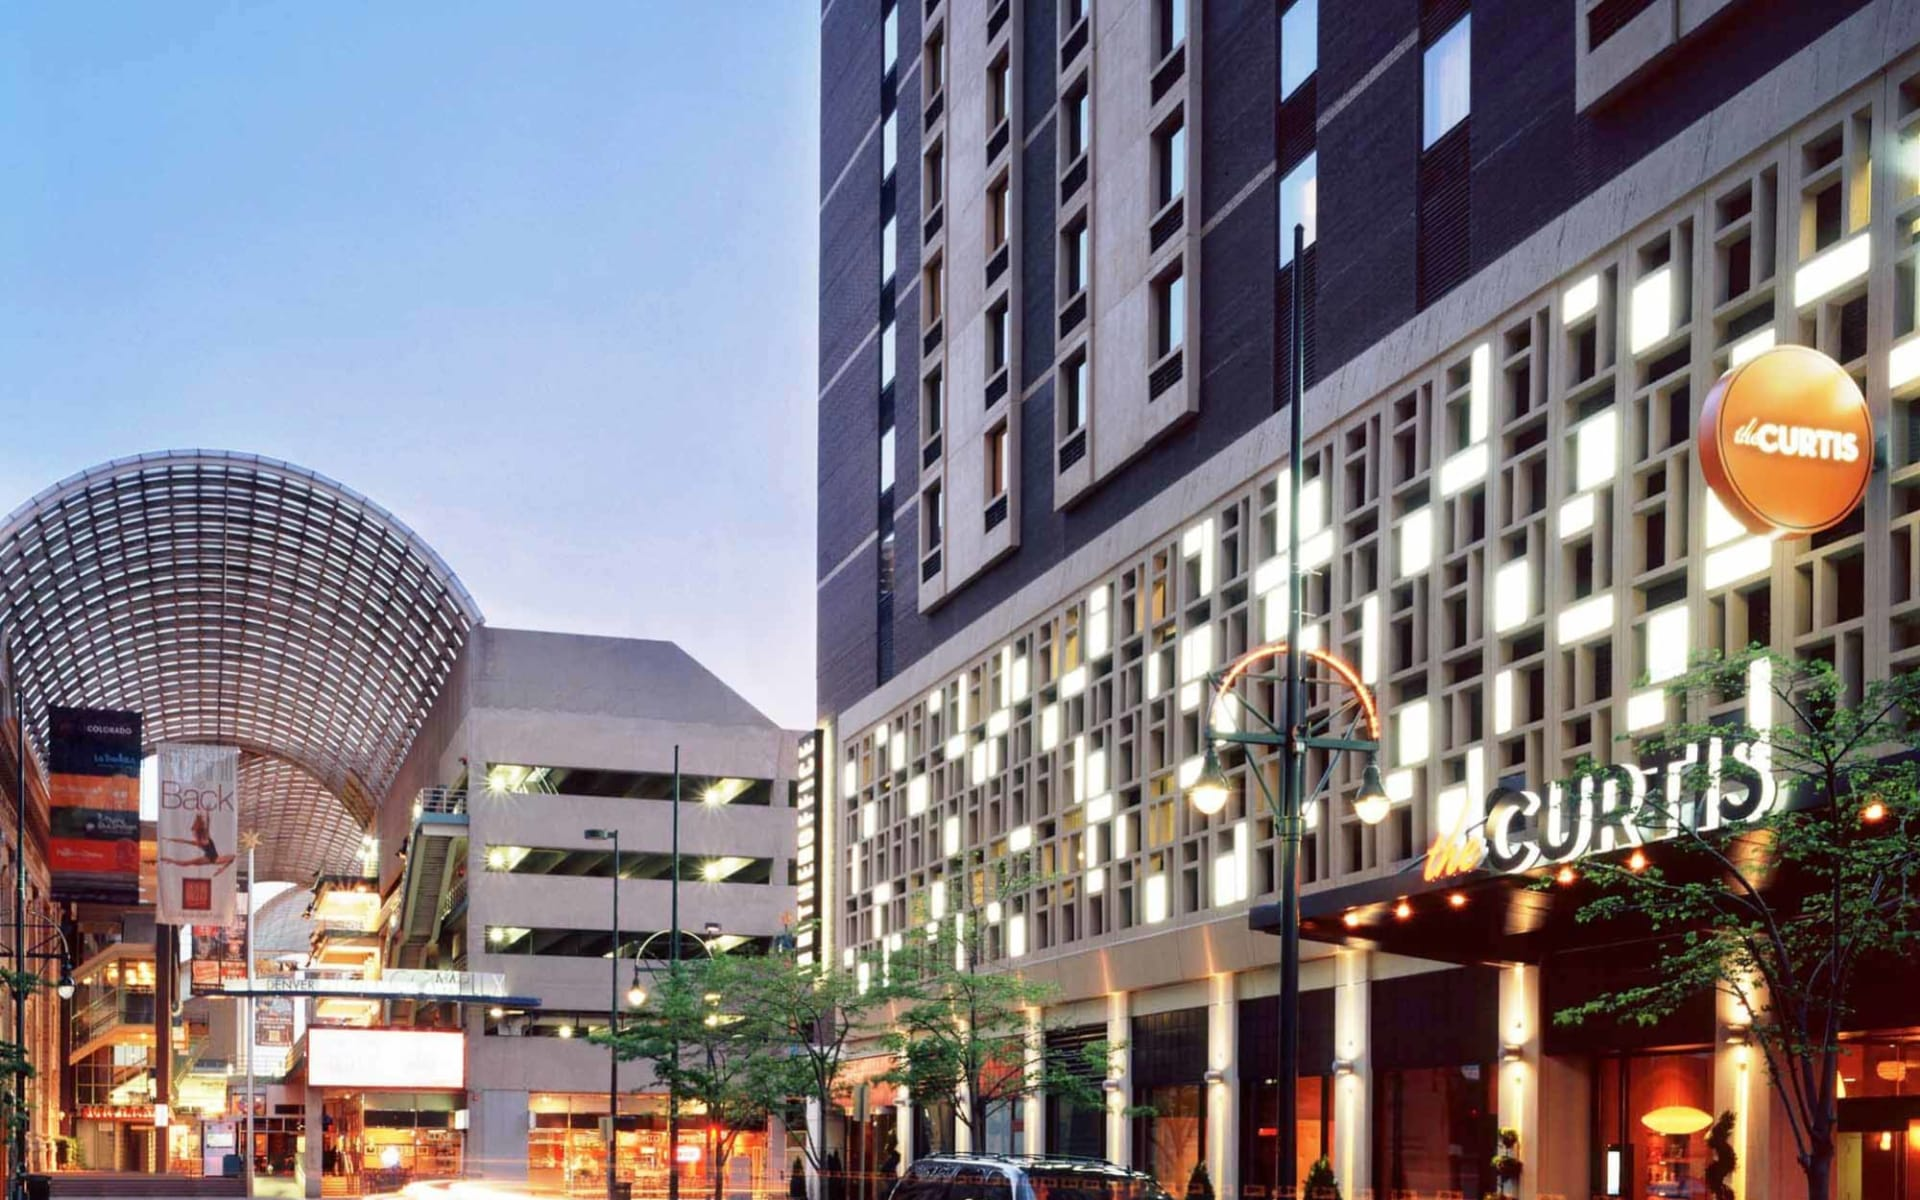 The Curtis Denver A DoubleTree by Hilton Hotel:  The Curtis - Fasade